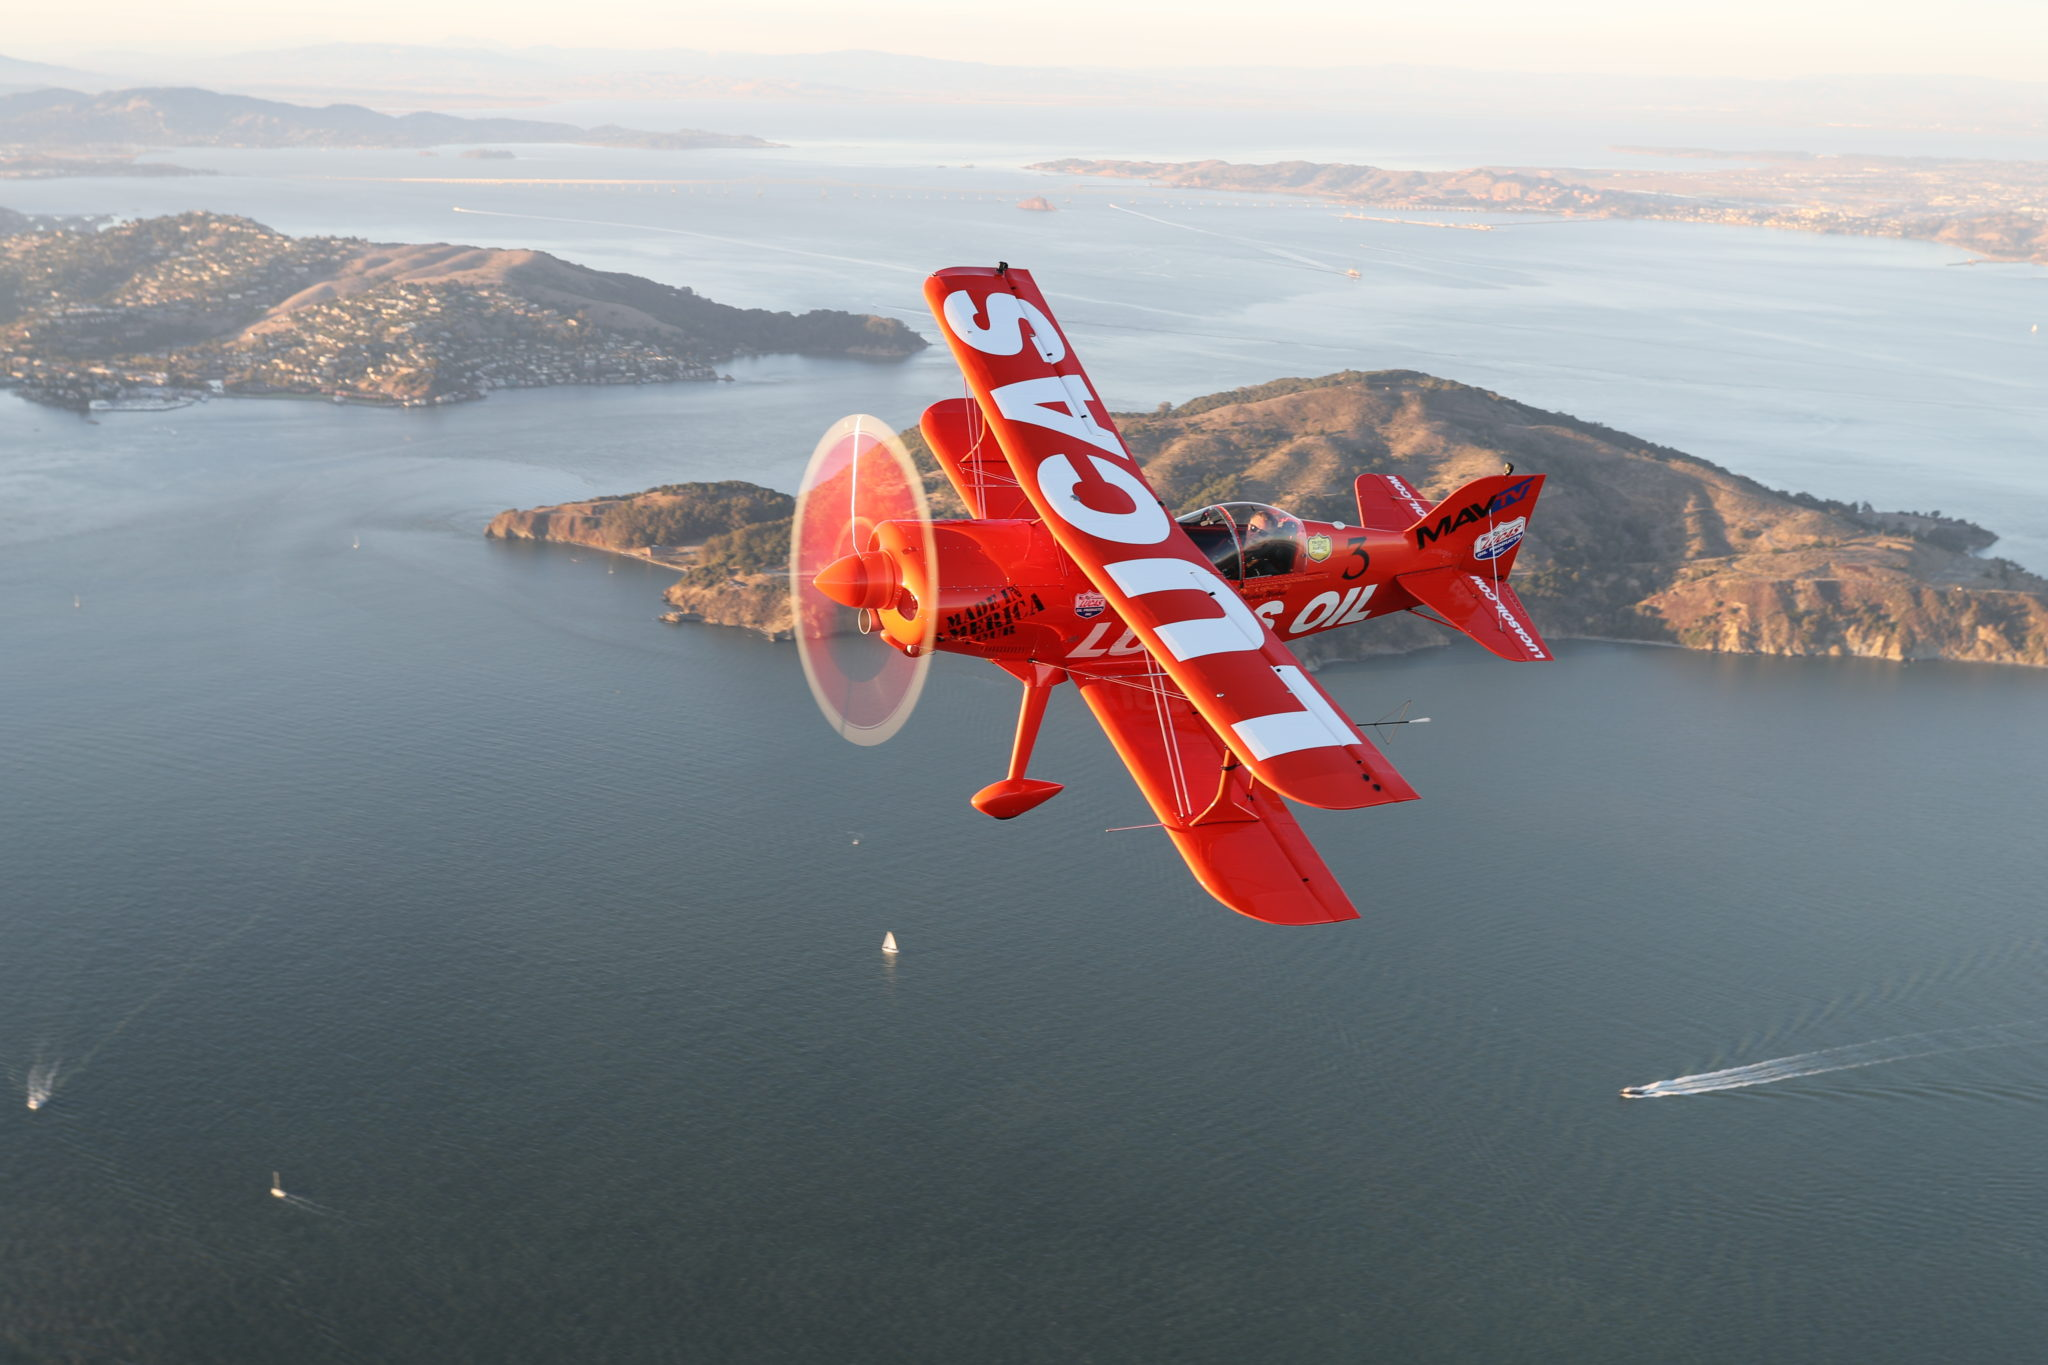 STIHL National Championship Air Races Announces Final Performance Lineup